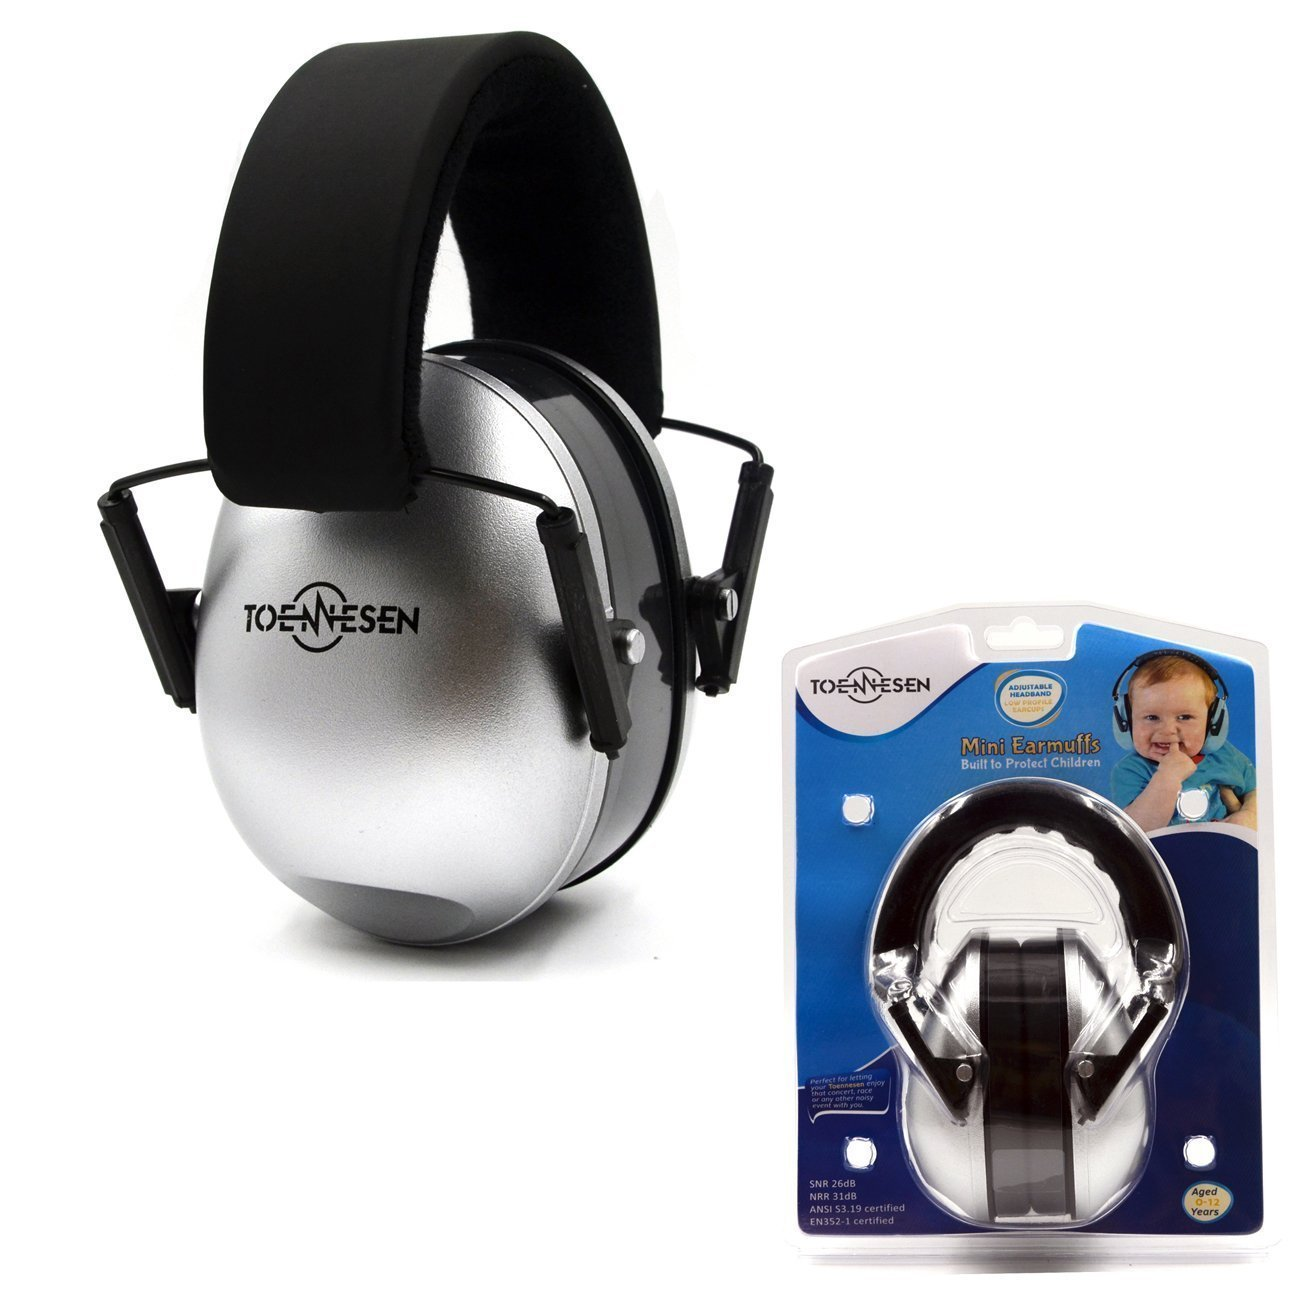 Toennesen Kids Ear Defenders NRR 31dB Baby Ear Protectors Comfortable Safety Ear Muffs for Concert or Fireworks Hearing Protector with Adjustable Headband for Children (silver)